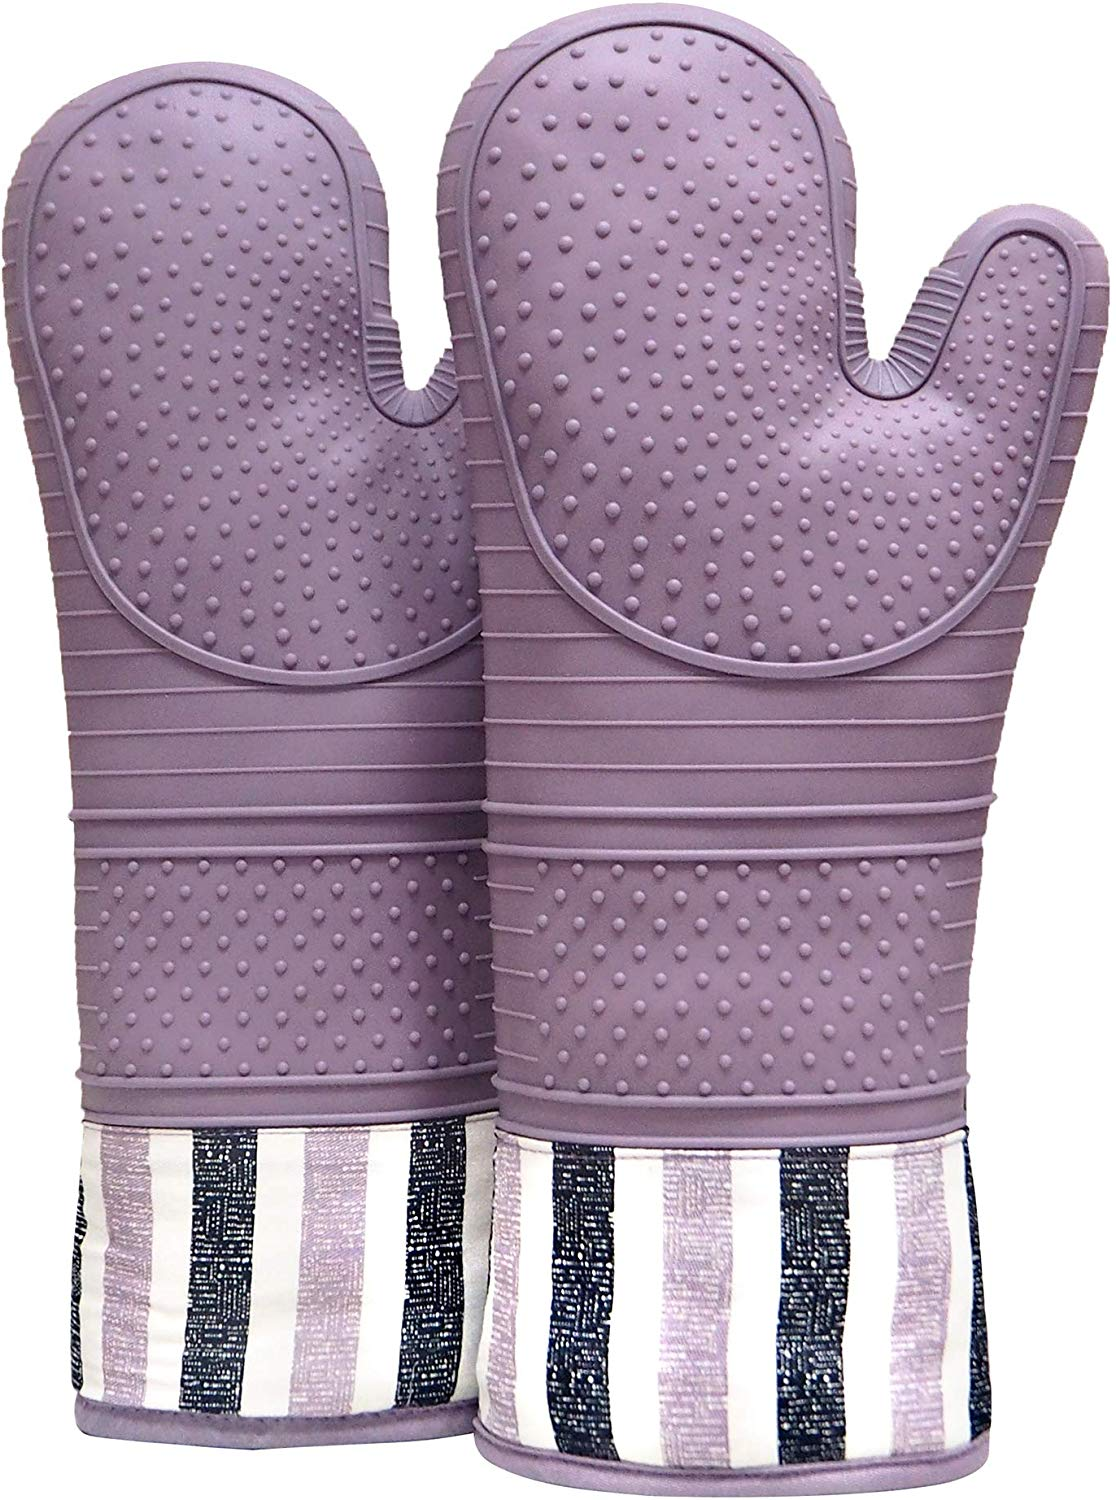 RED LMLDETA 550 Degree Oven Hot Mitts – 1 Pair